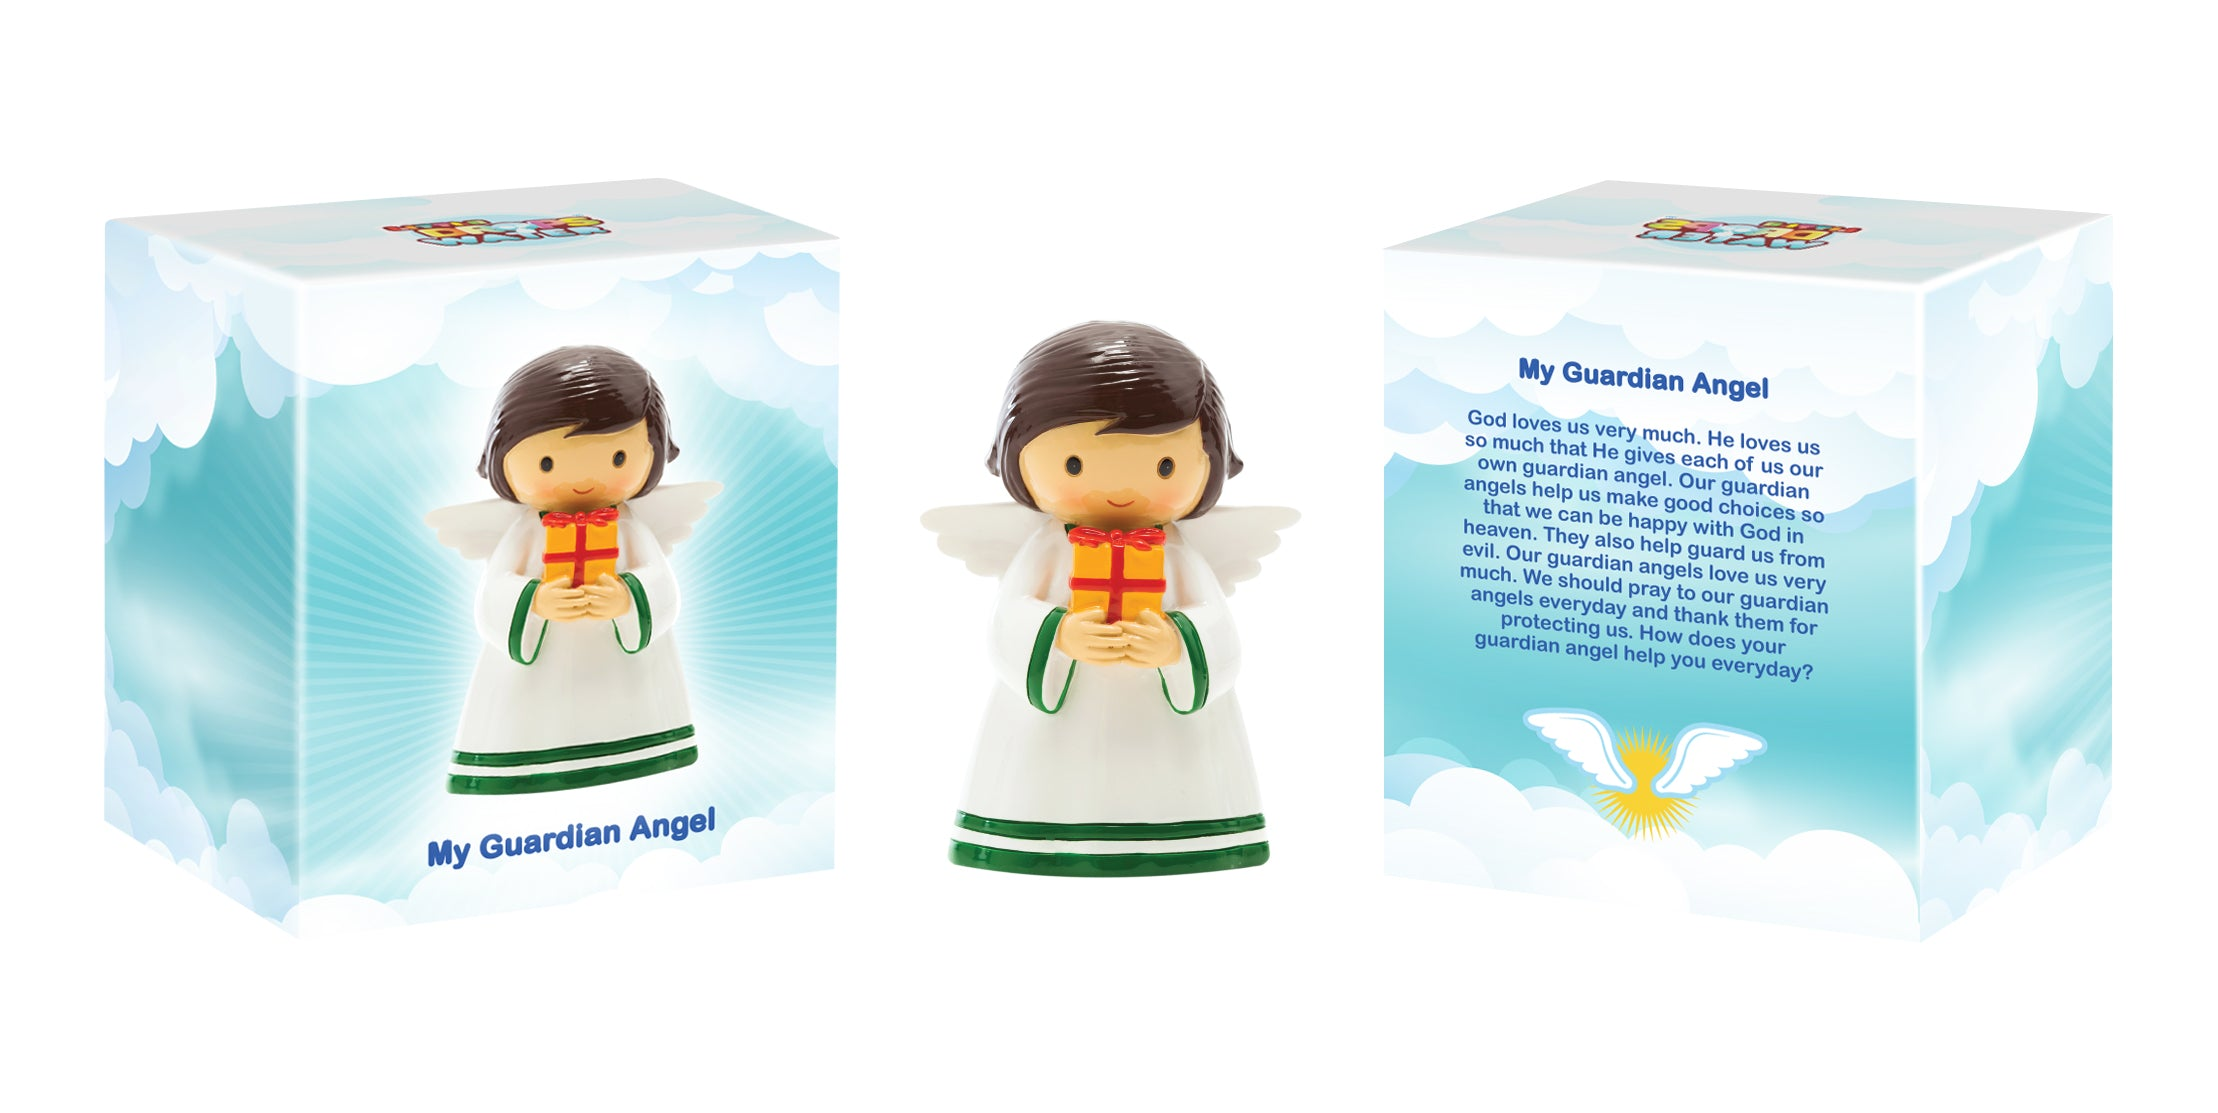 May Guardian Angel statue - Little Drops of Water